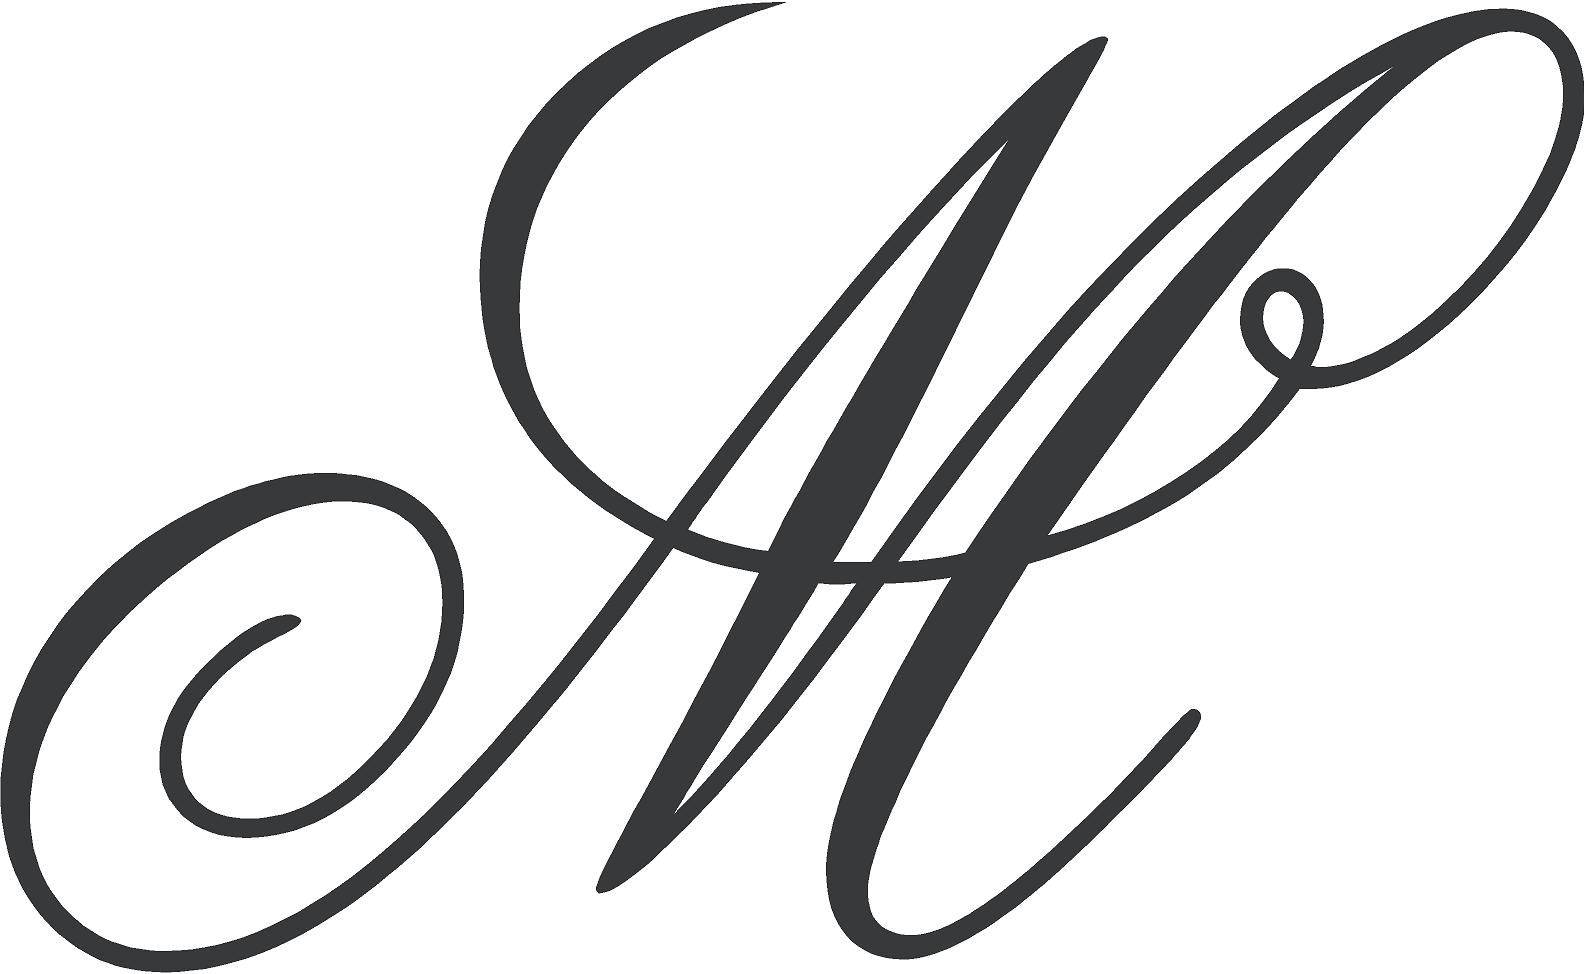 Cursive h lowercase clipart png library download Cursive h lowercase clipart - ClipartFest png library download